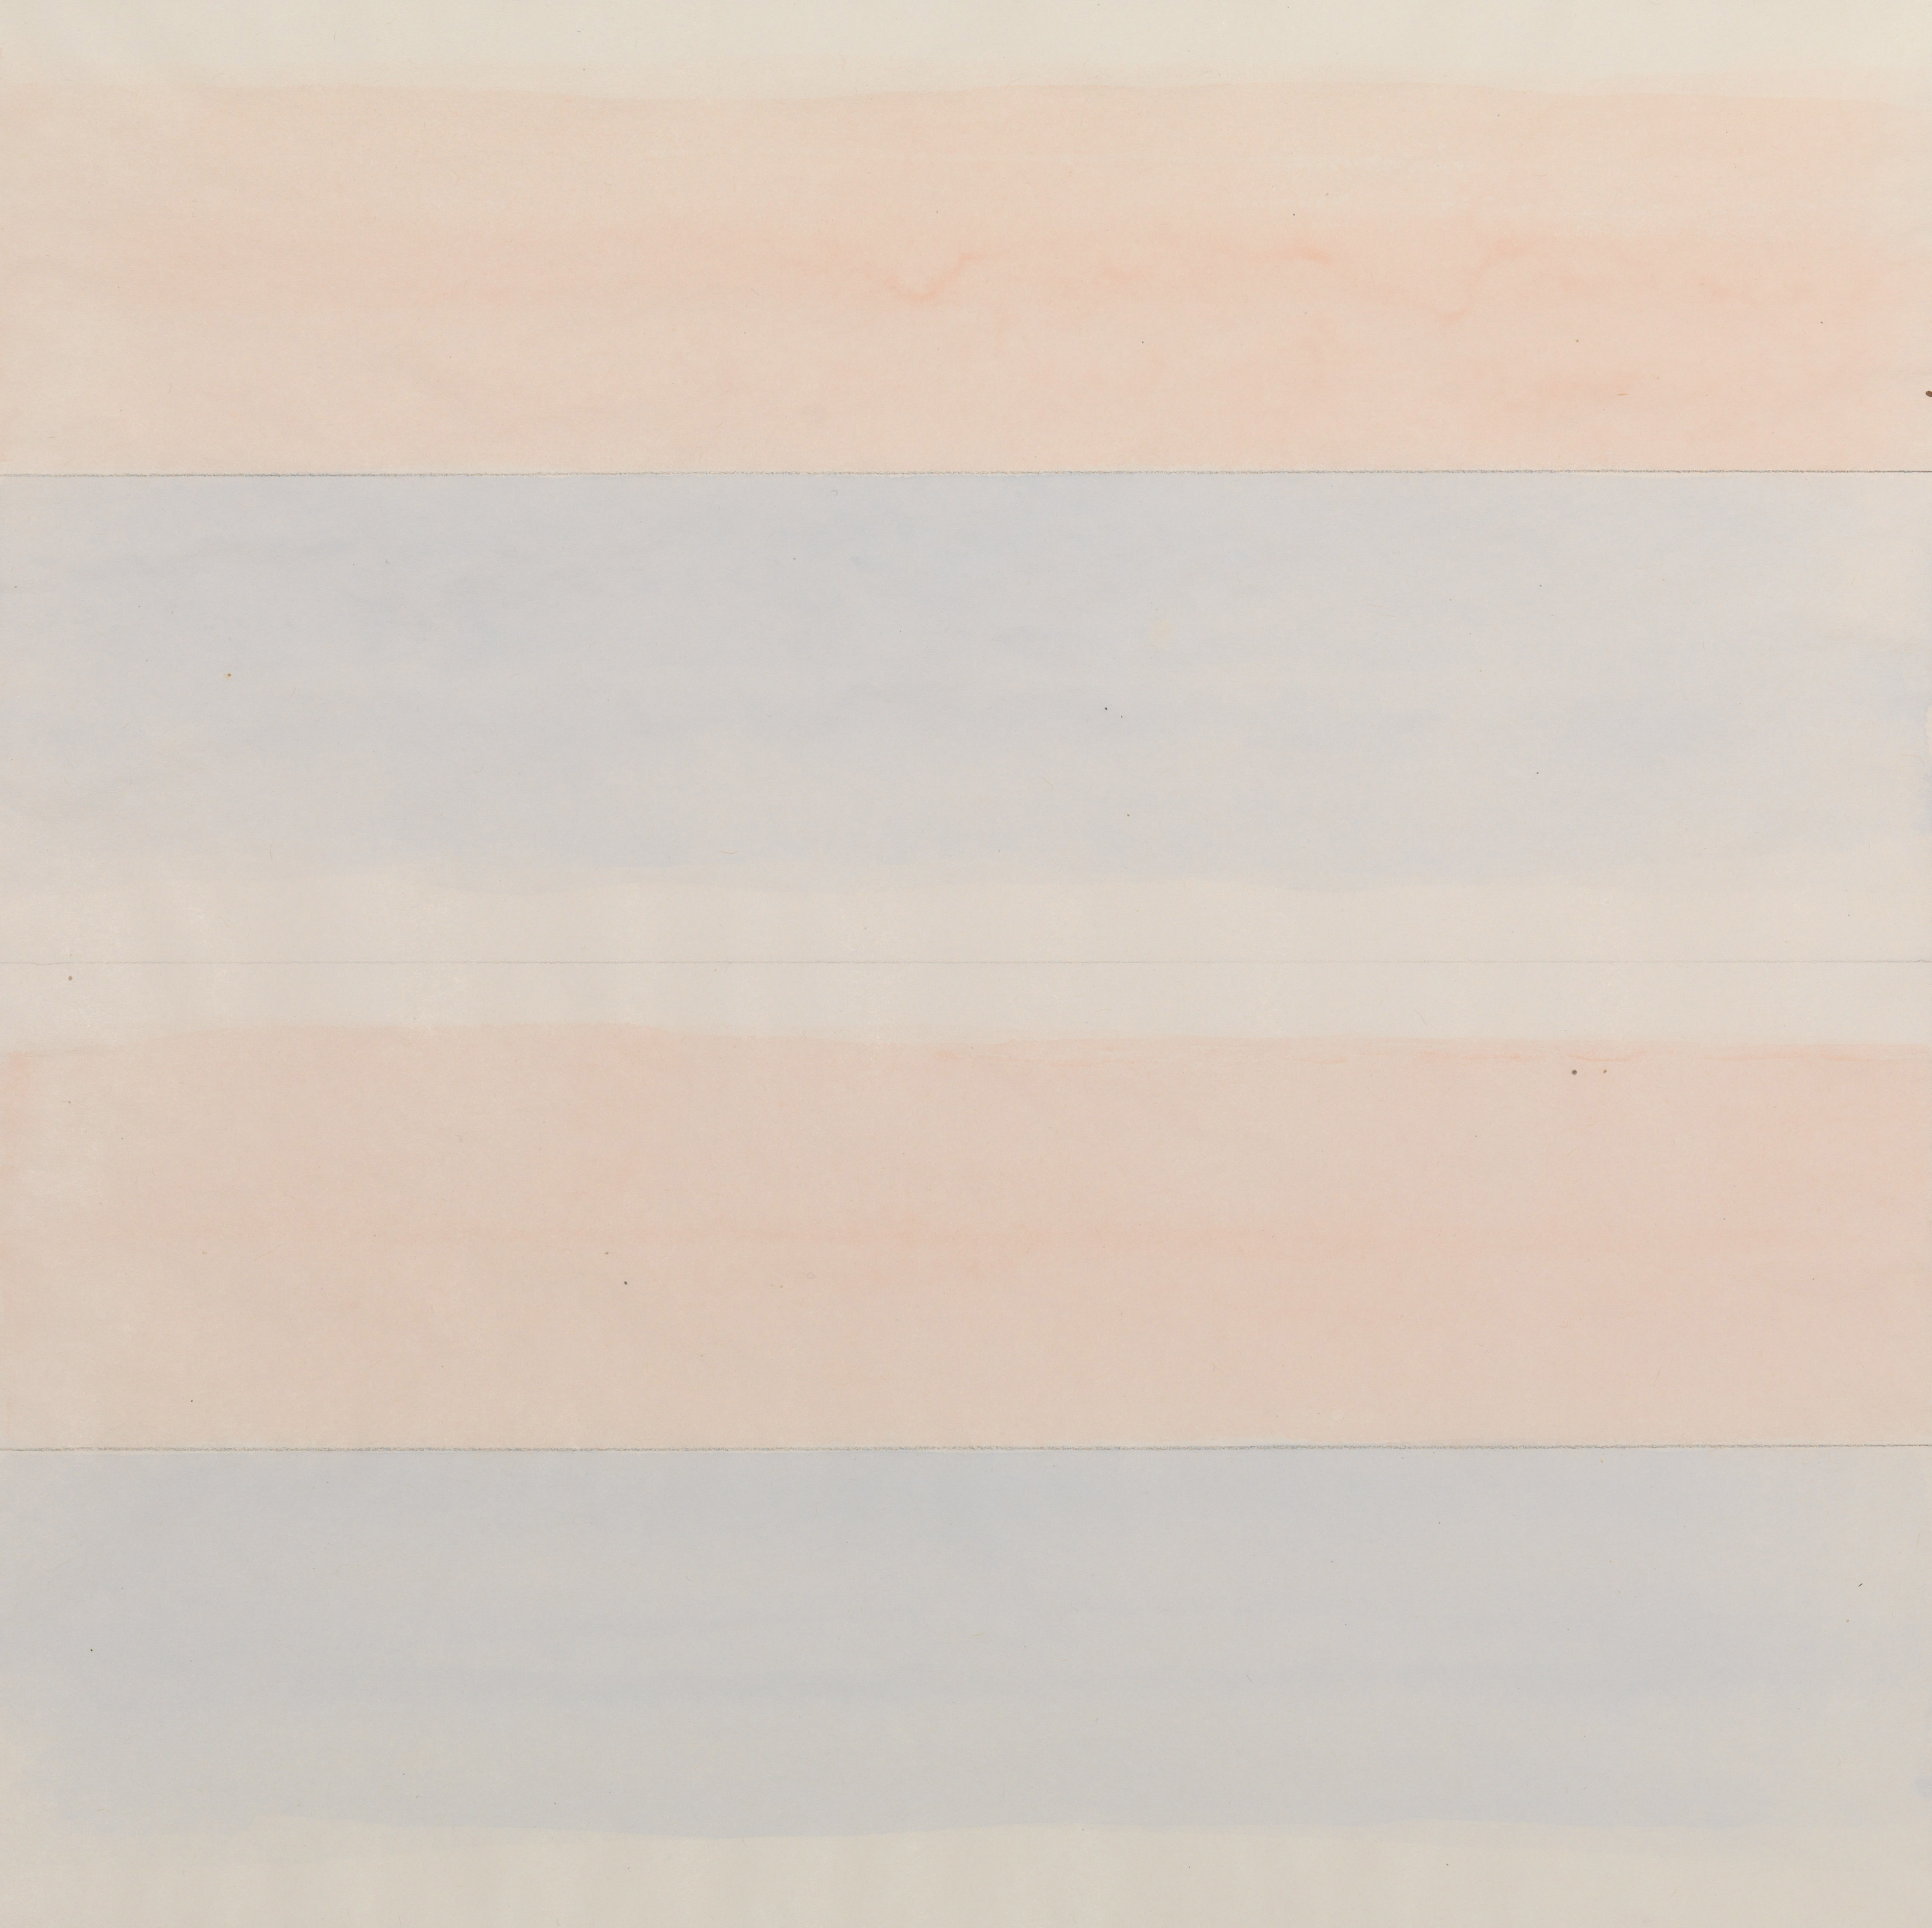 agnes martin untitled